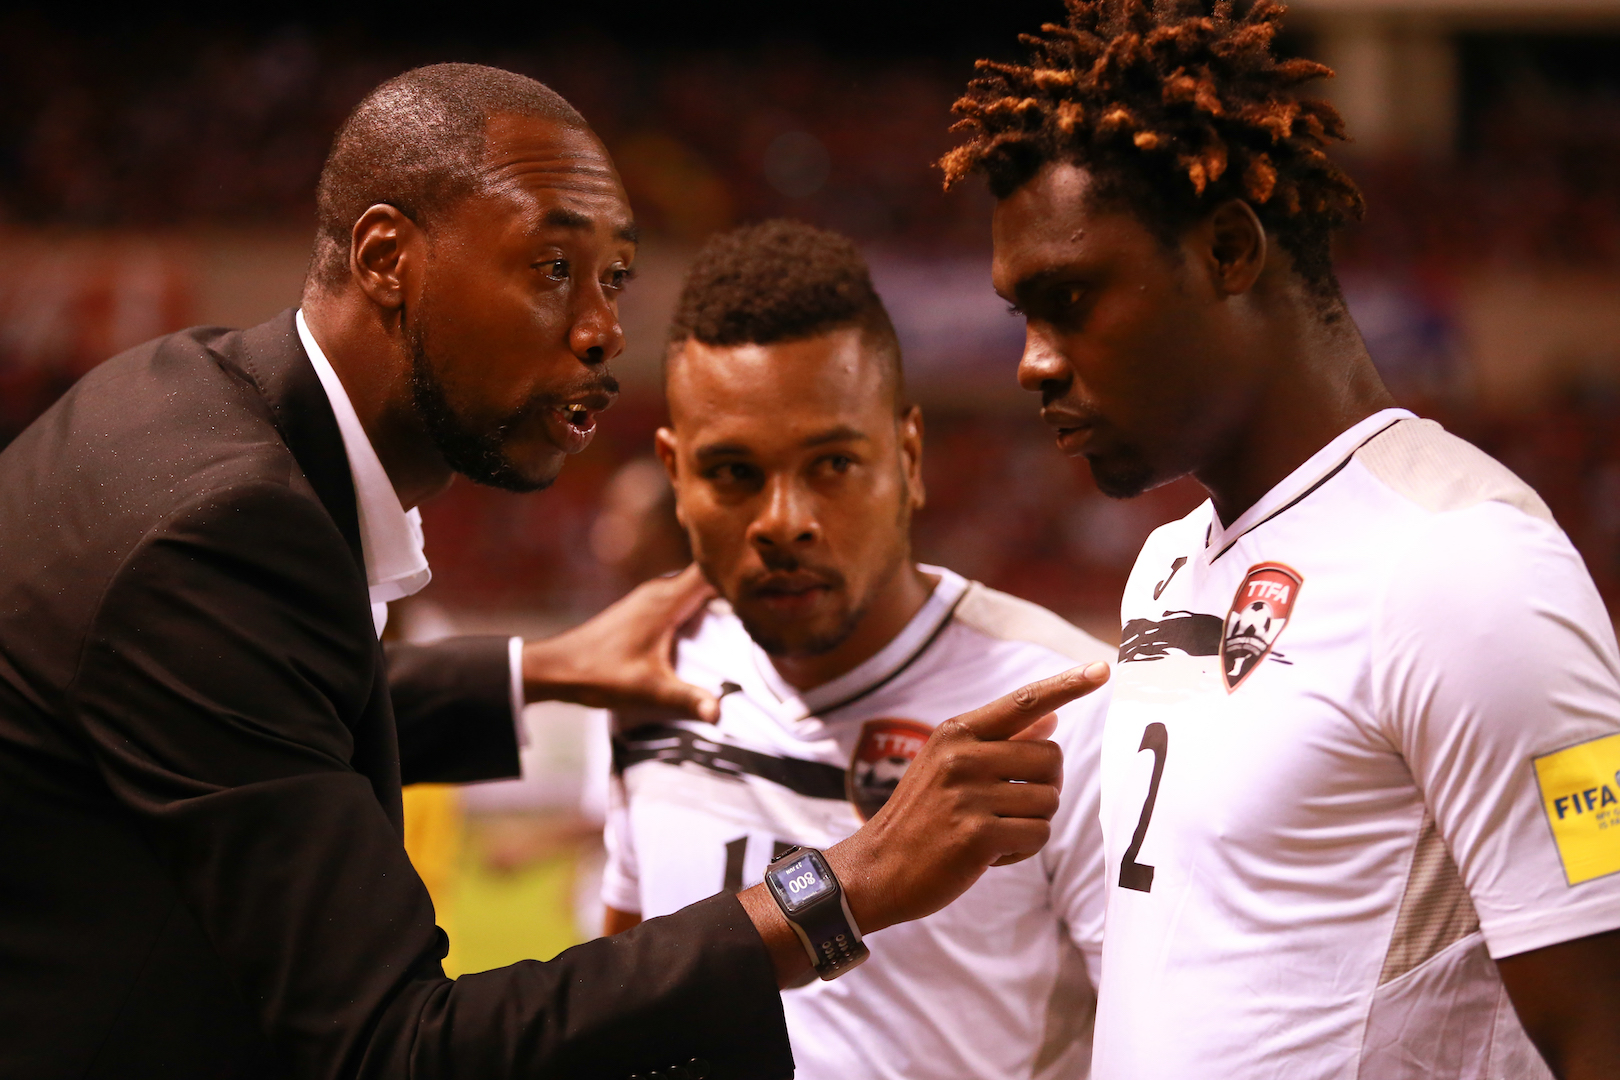 Headcoach Dennis Lawrence gives final instructions to defenders Aubery David (#2) and Curtis Gonzales ahead of the start of the FIFA Russia 2018 World Cup Qualifier match vs Costa Rica. Photo by Allan Crane (For editorial use, please contact Allan Crane)